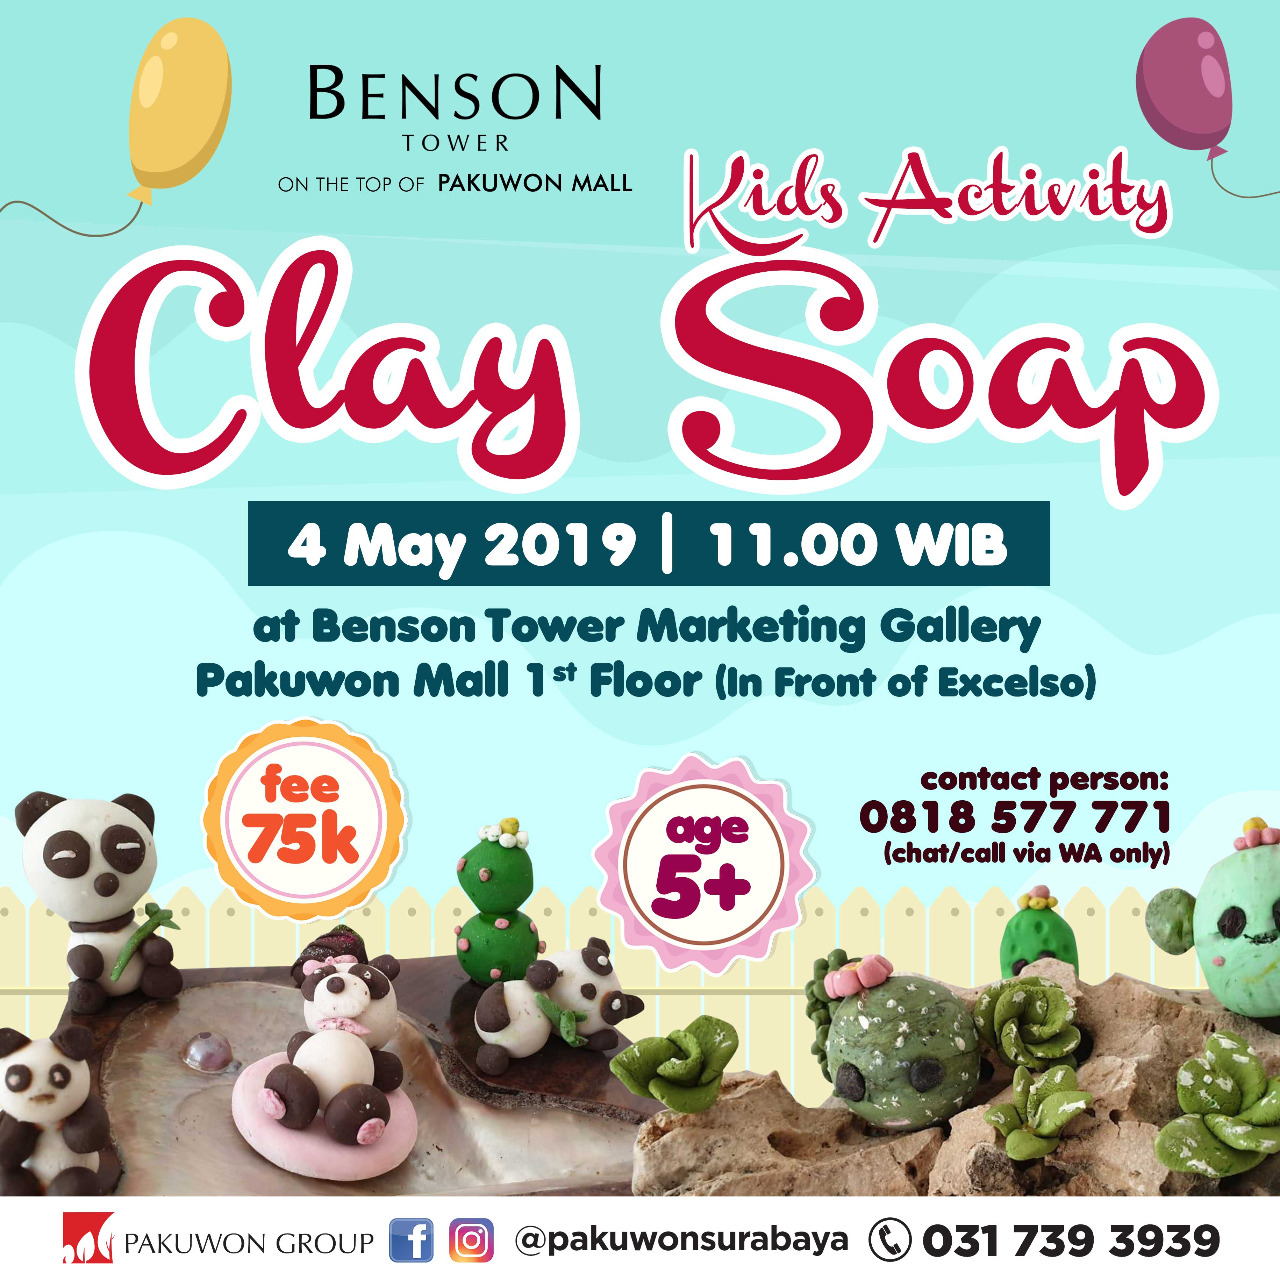 Kids Activity Clay Soap Workshop at Benson Tower